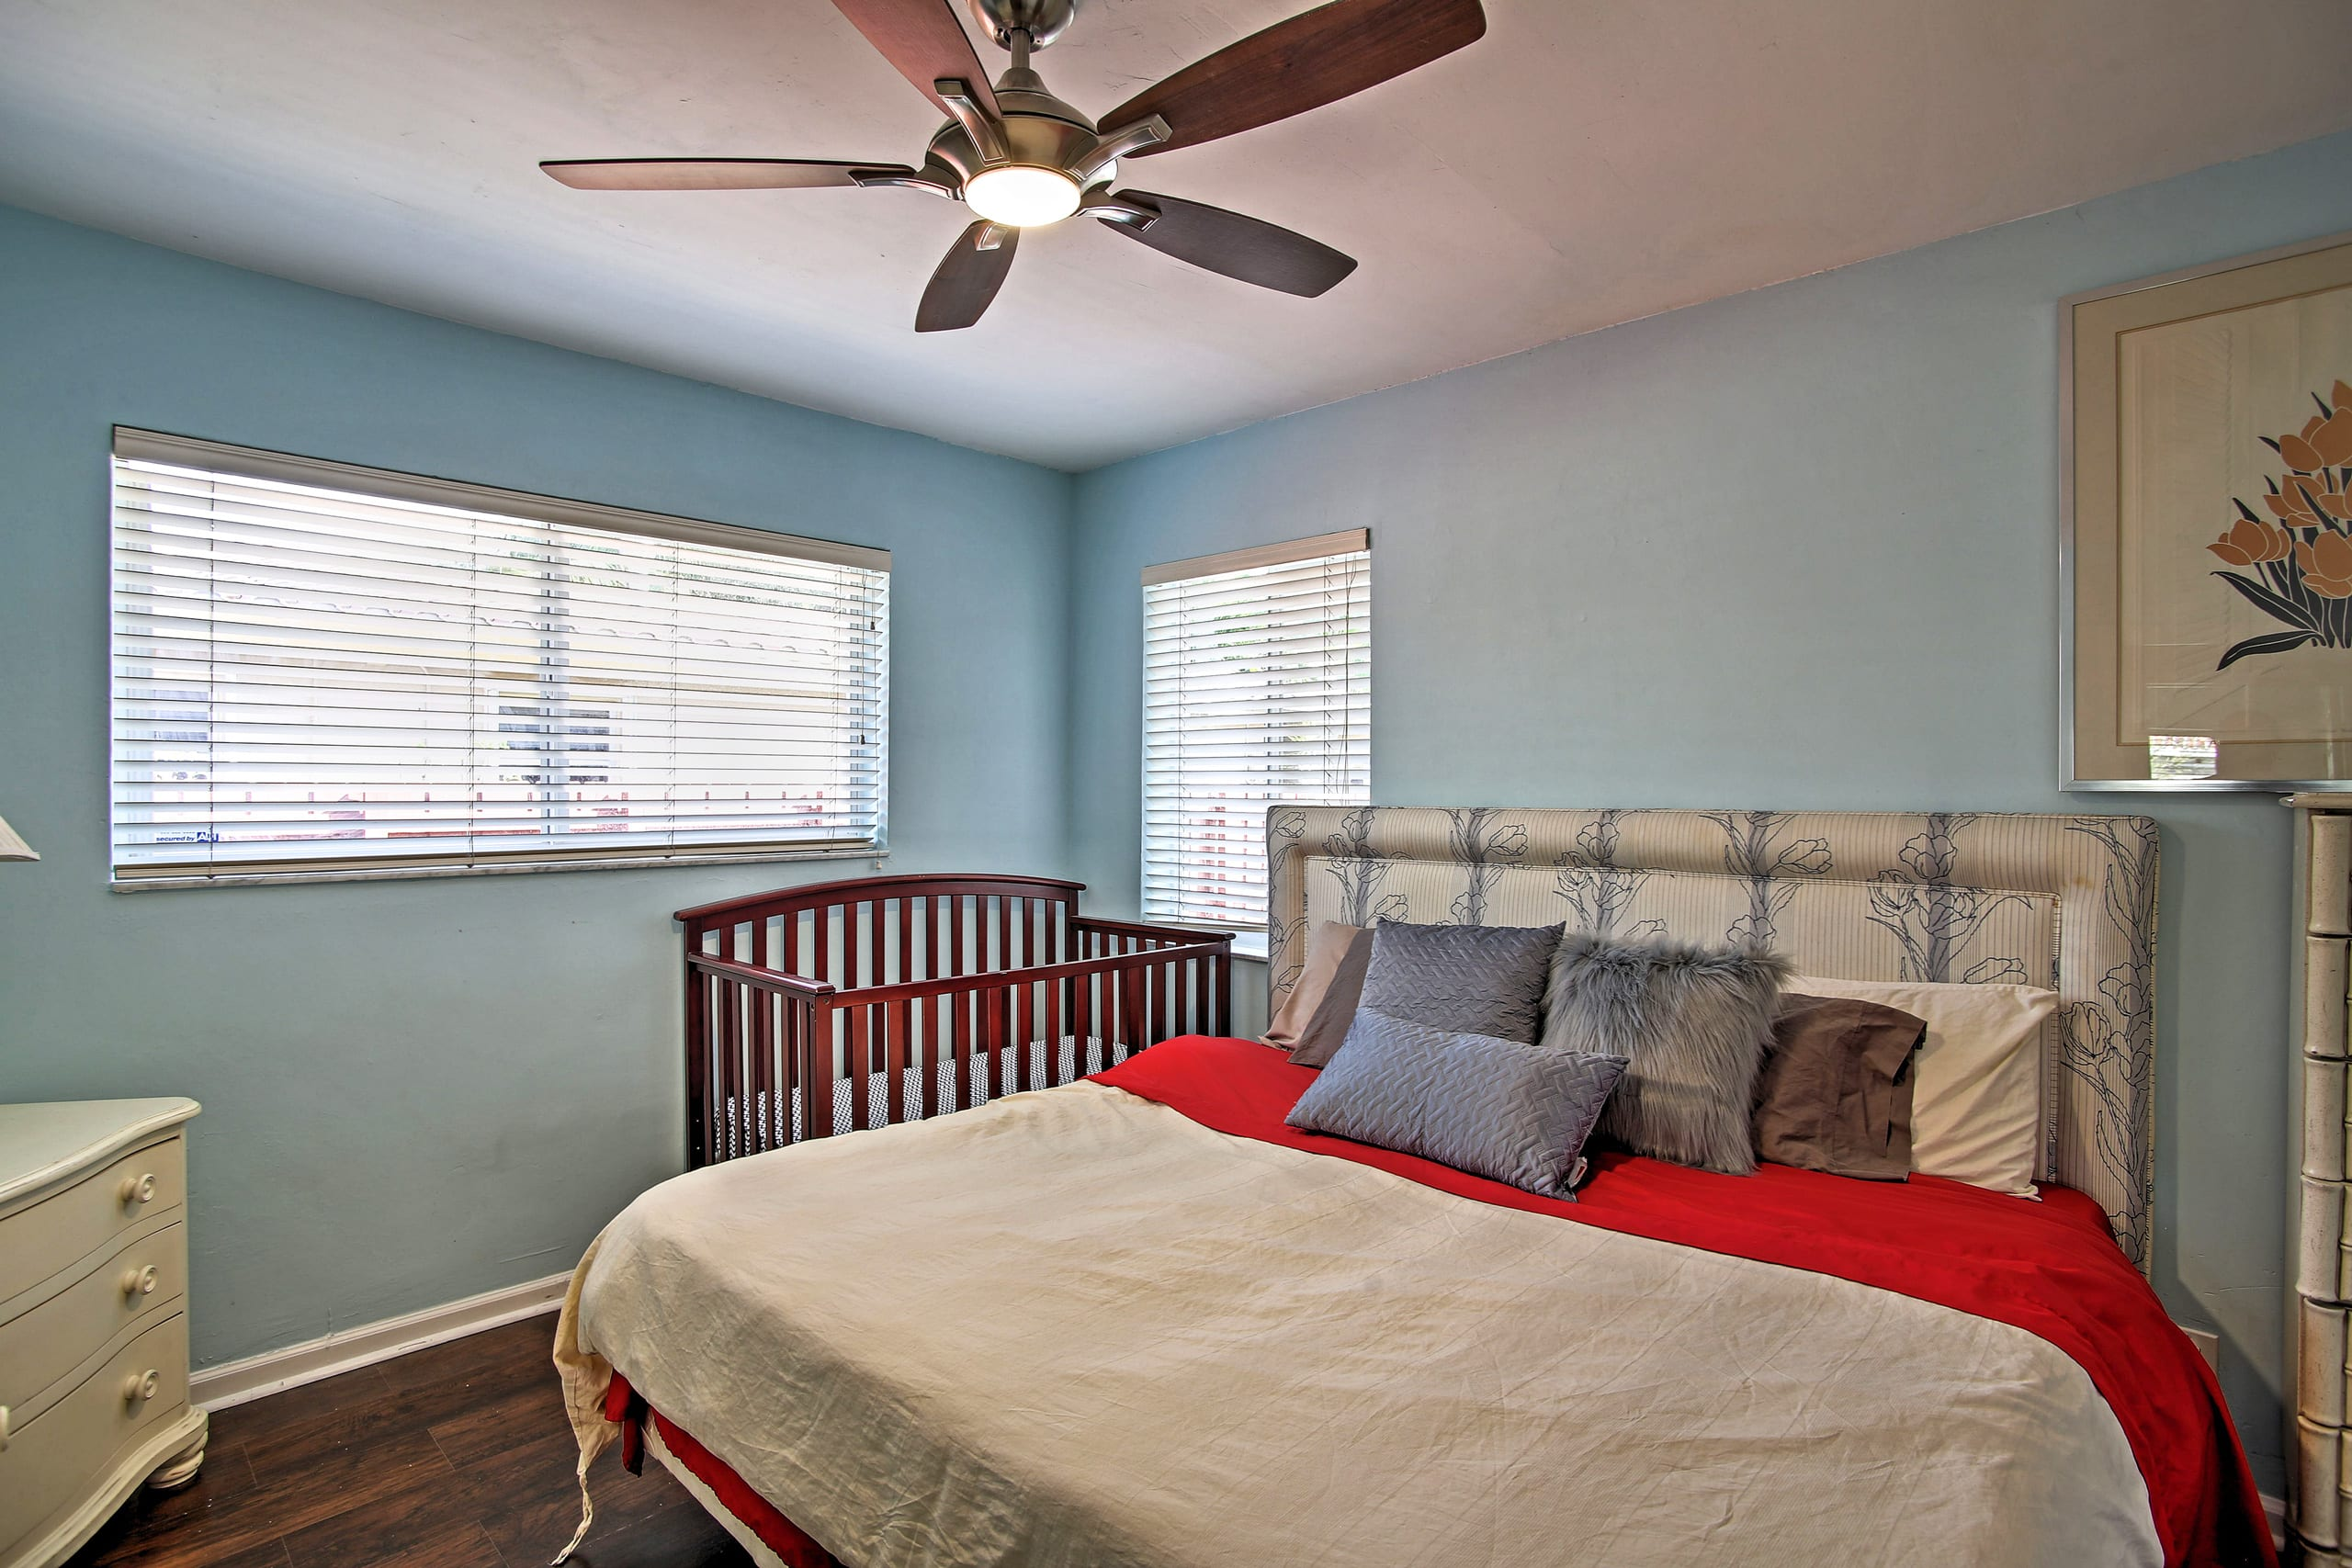 This room is perfect for a small family traveling together.